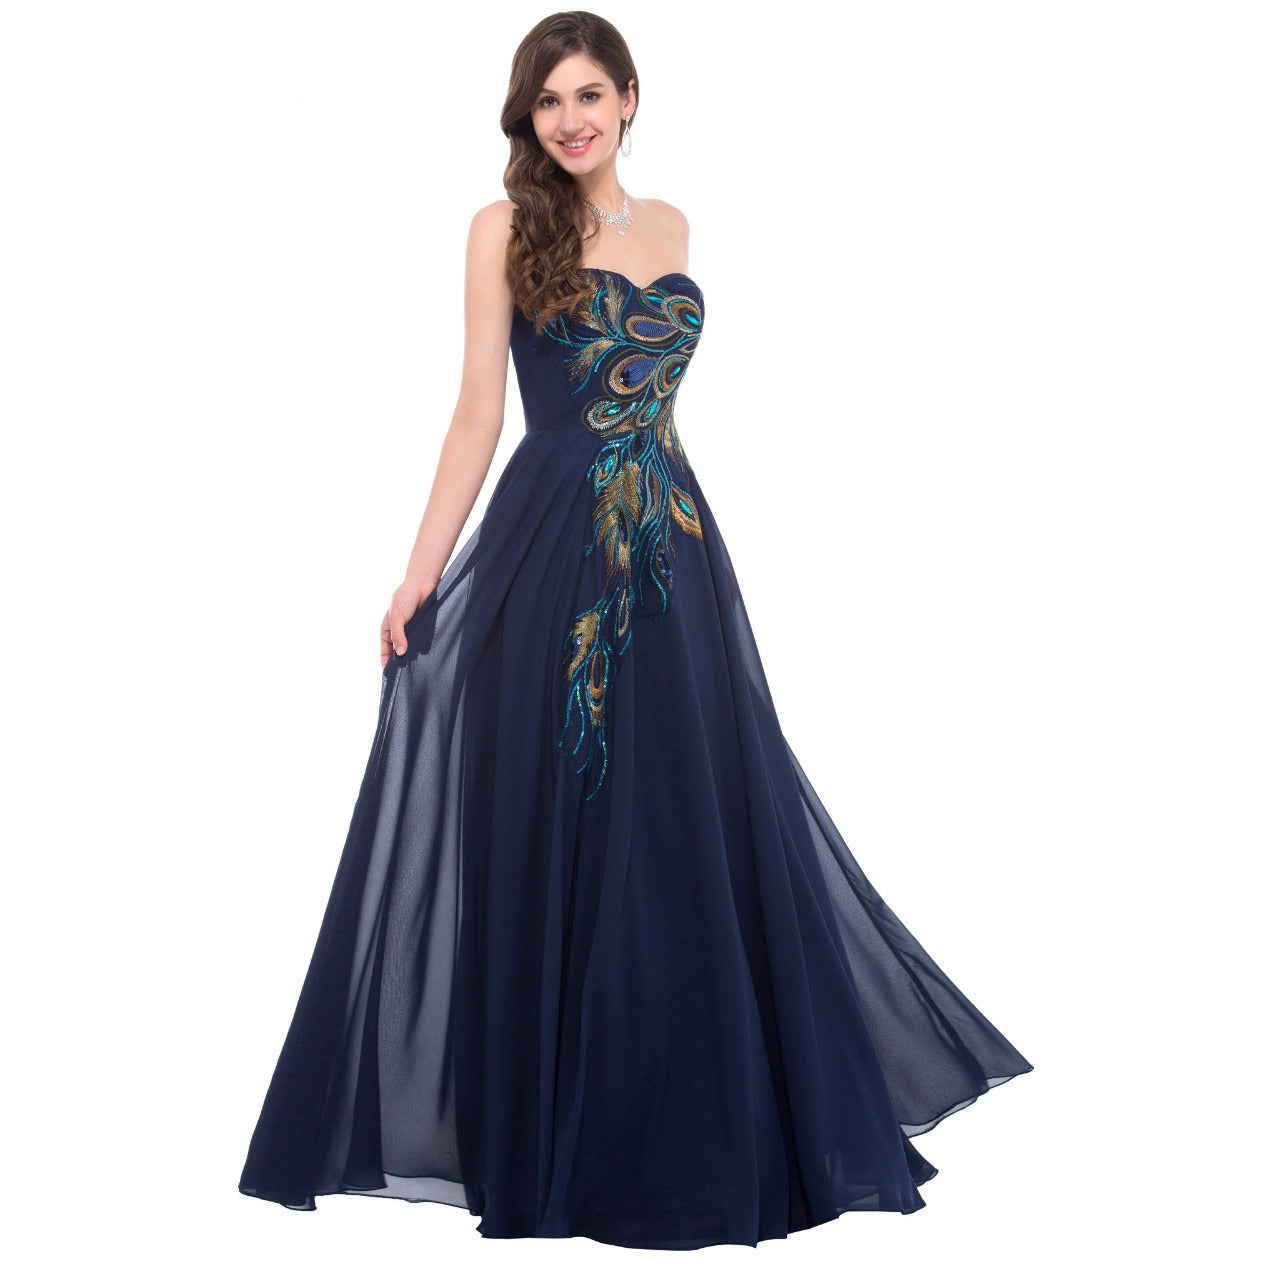 Grace Karin Strapless Formal Long Evening Gown - Indifashion